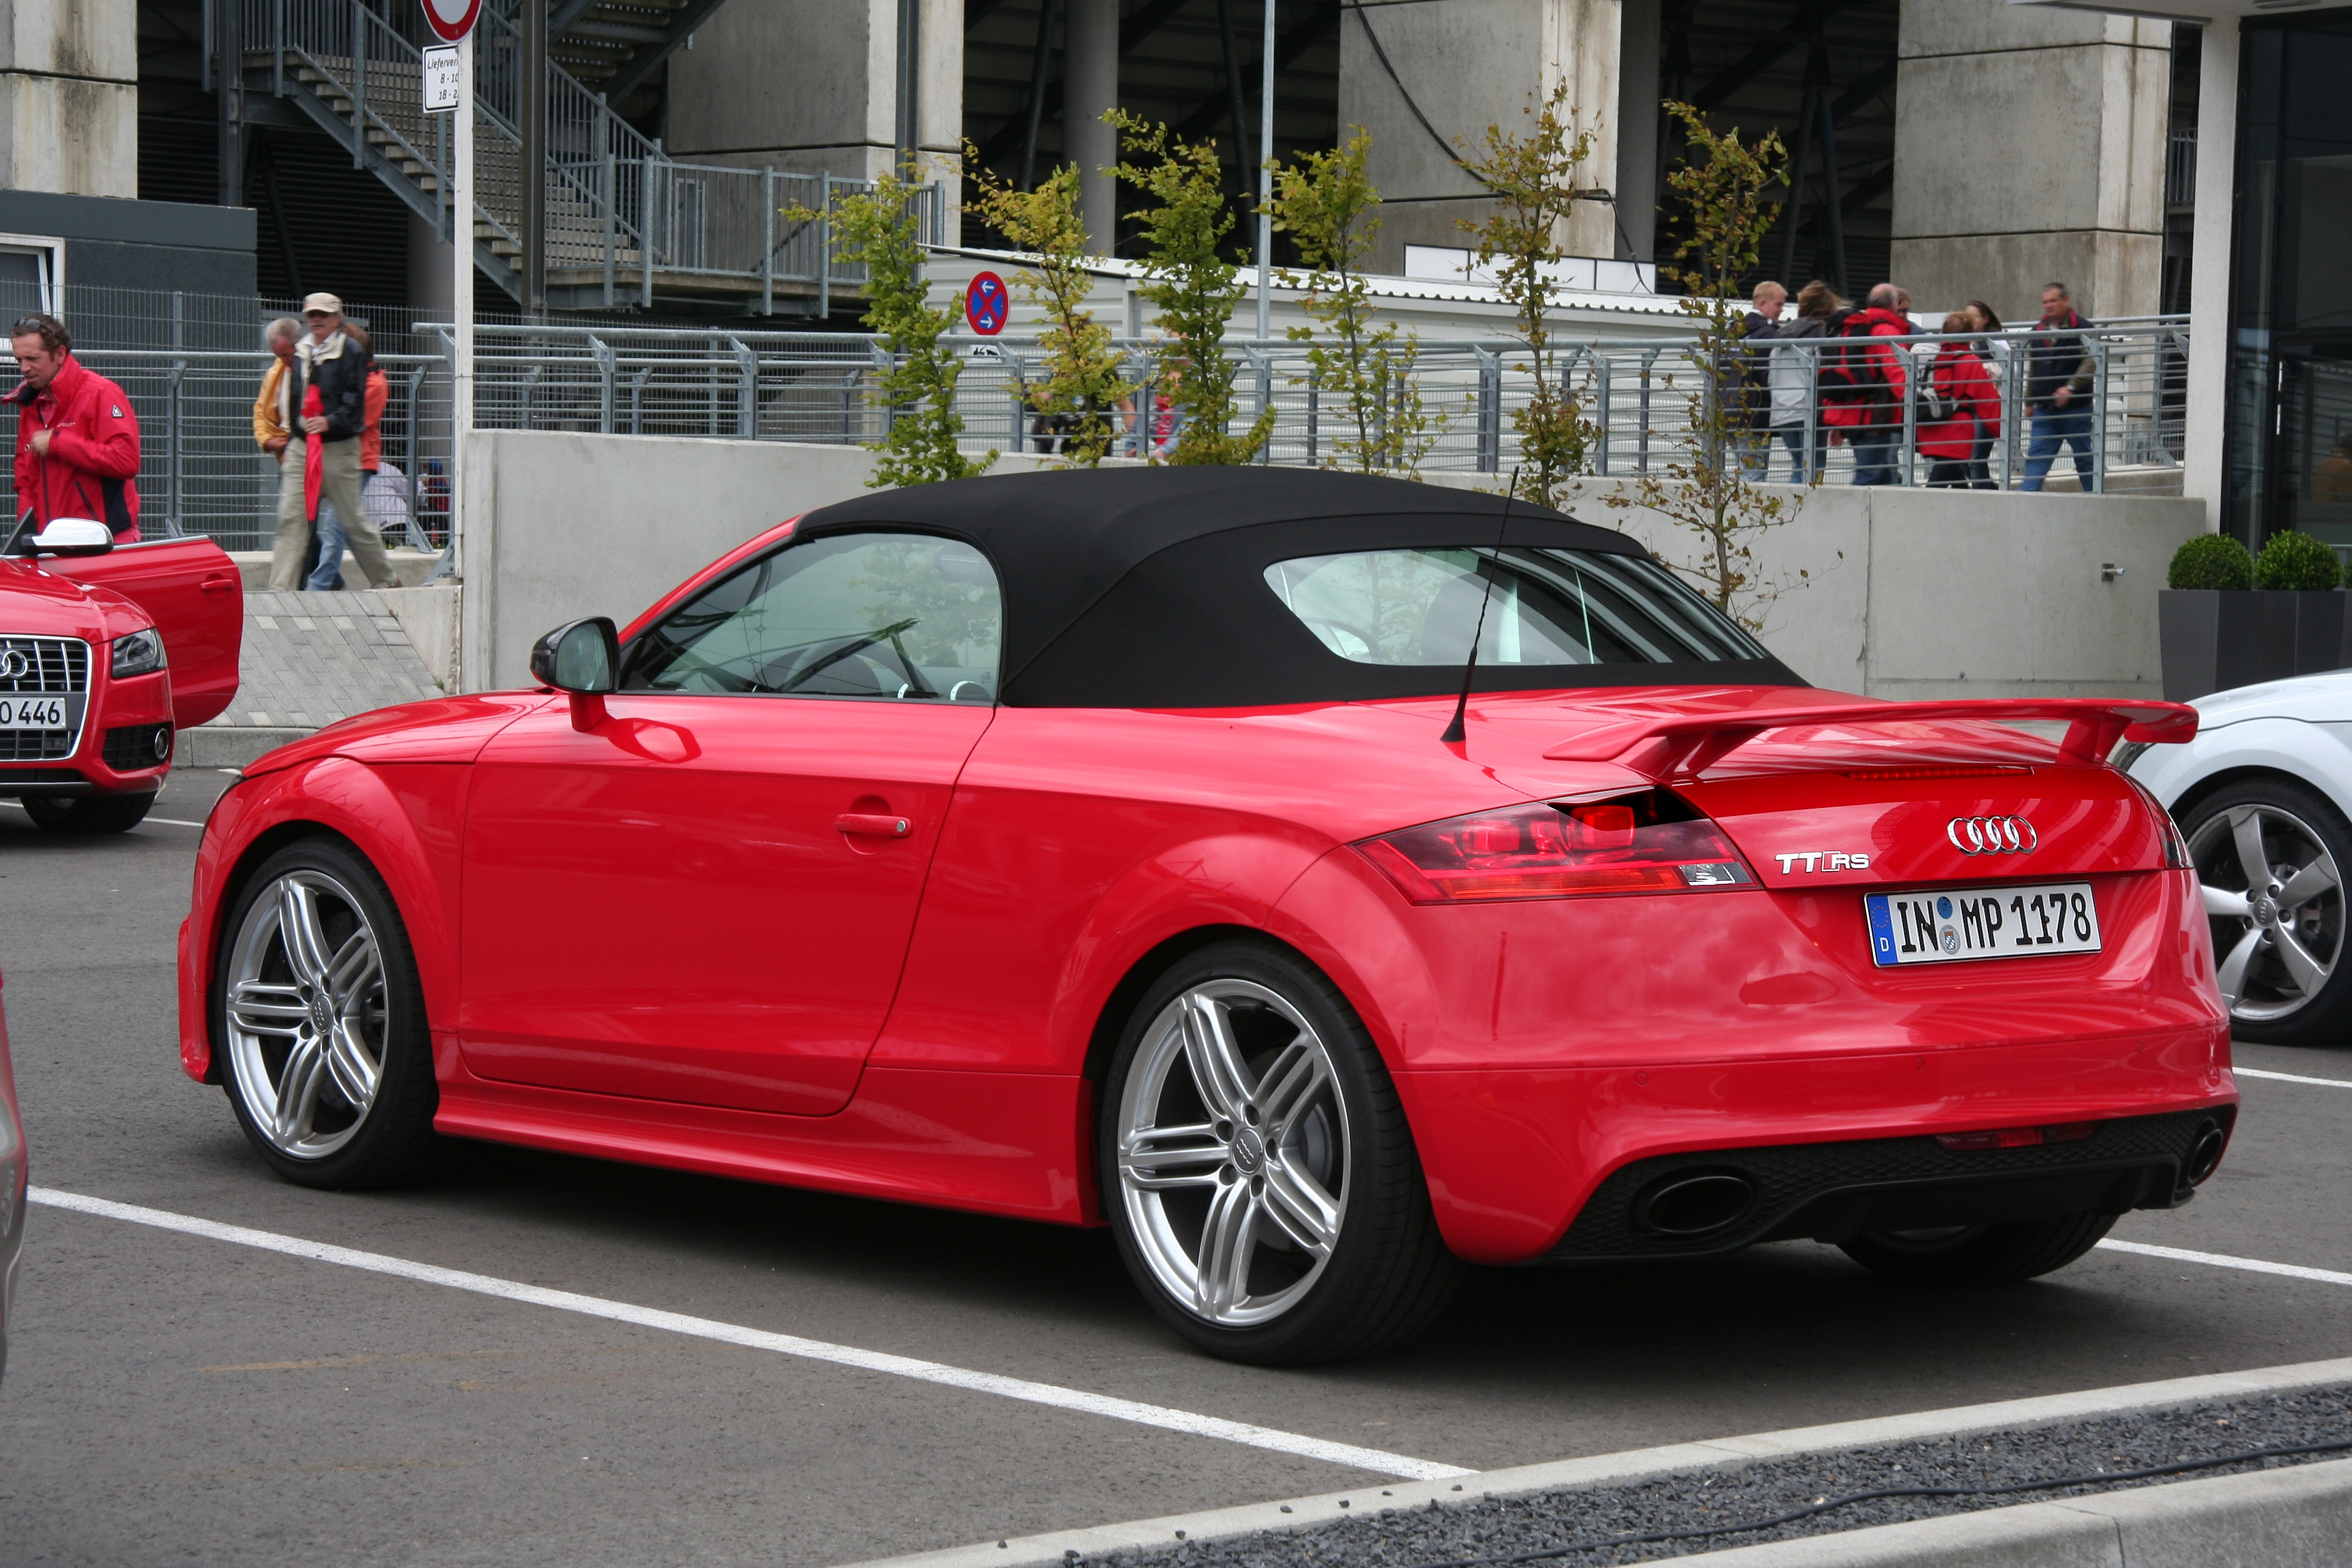 File Audi Tt Rs Roadster 2011 08 13 Sp Jpg Wikimedia